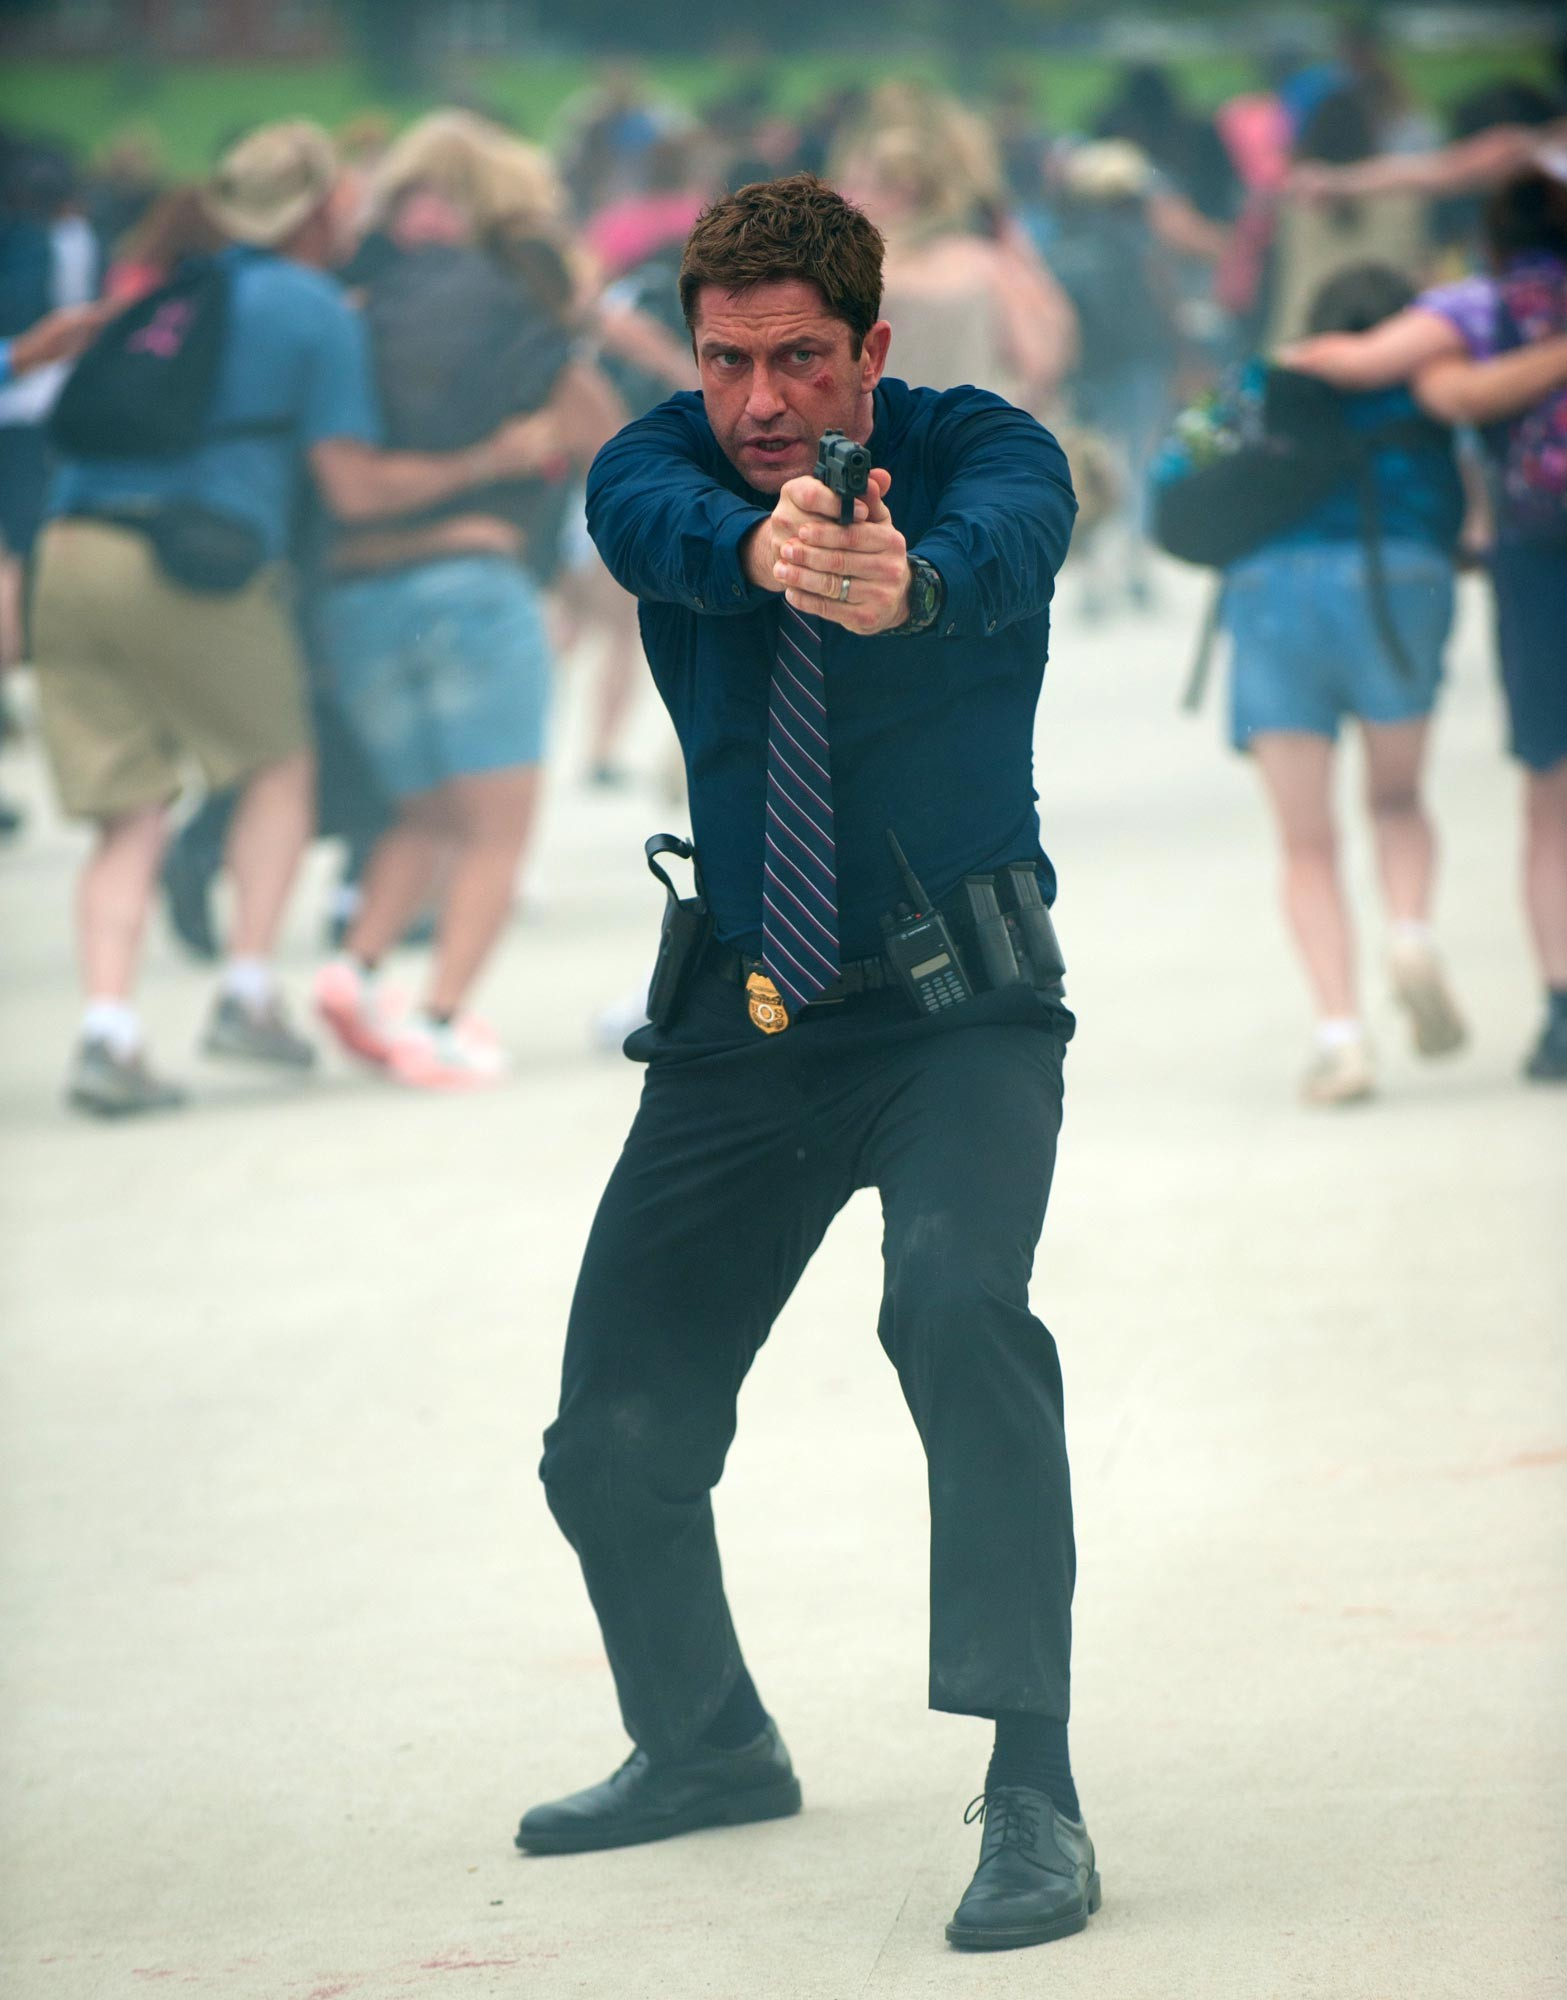 Interview Gerard Butler Talks About His Role In Olympus Has Fallen New Red Band Clip From Olympus Has Fallen Features Gerard Butler